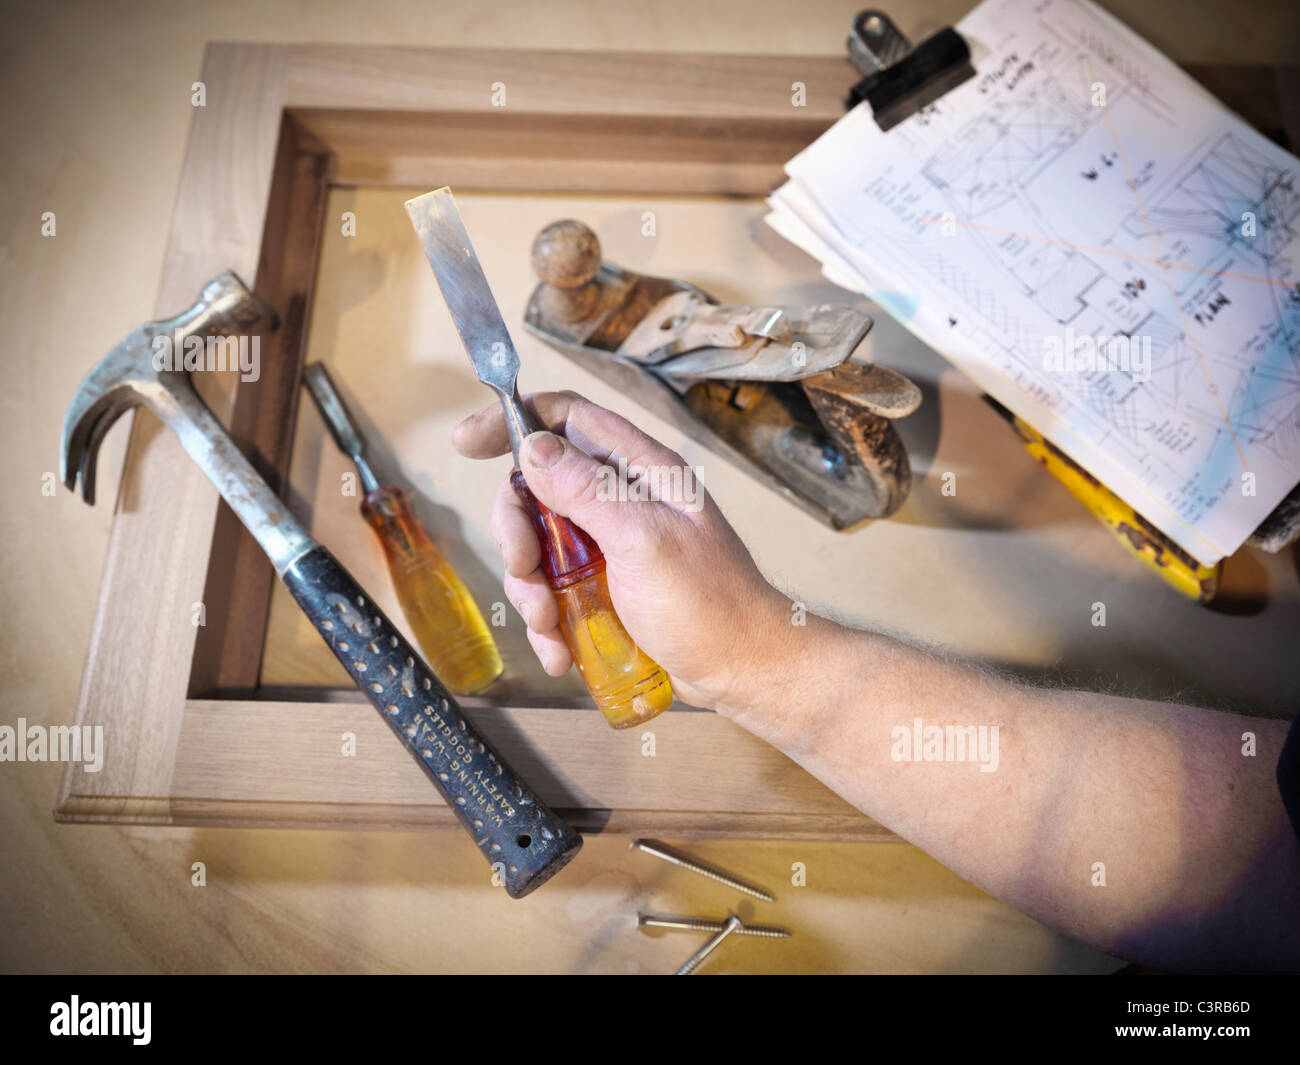 Hand holding woodworking tools - Stock Image